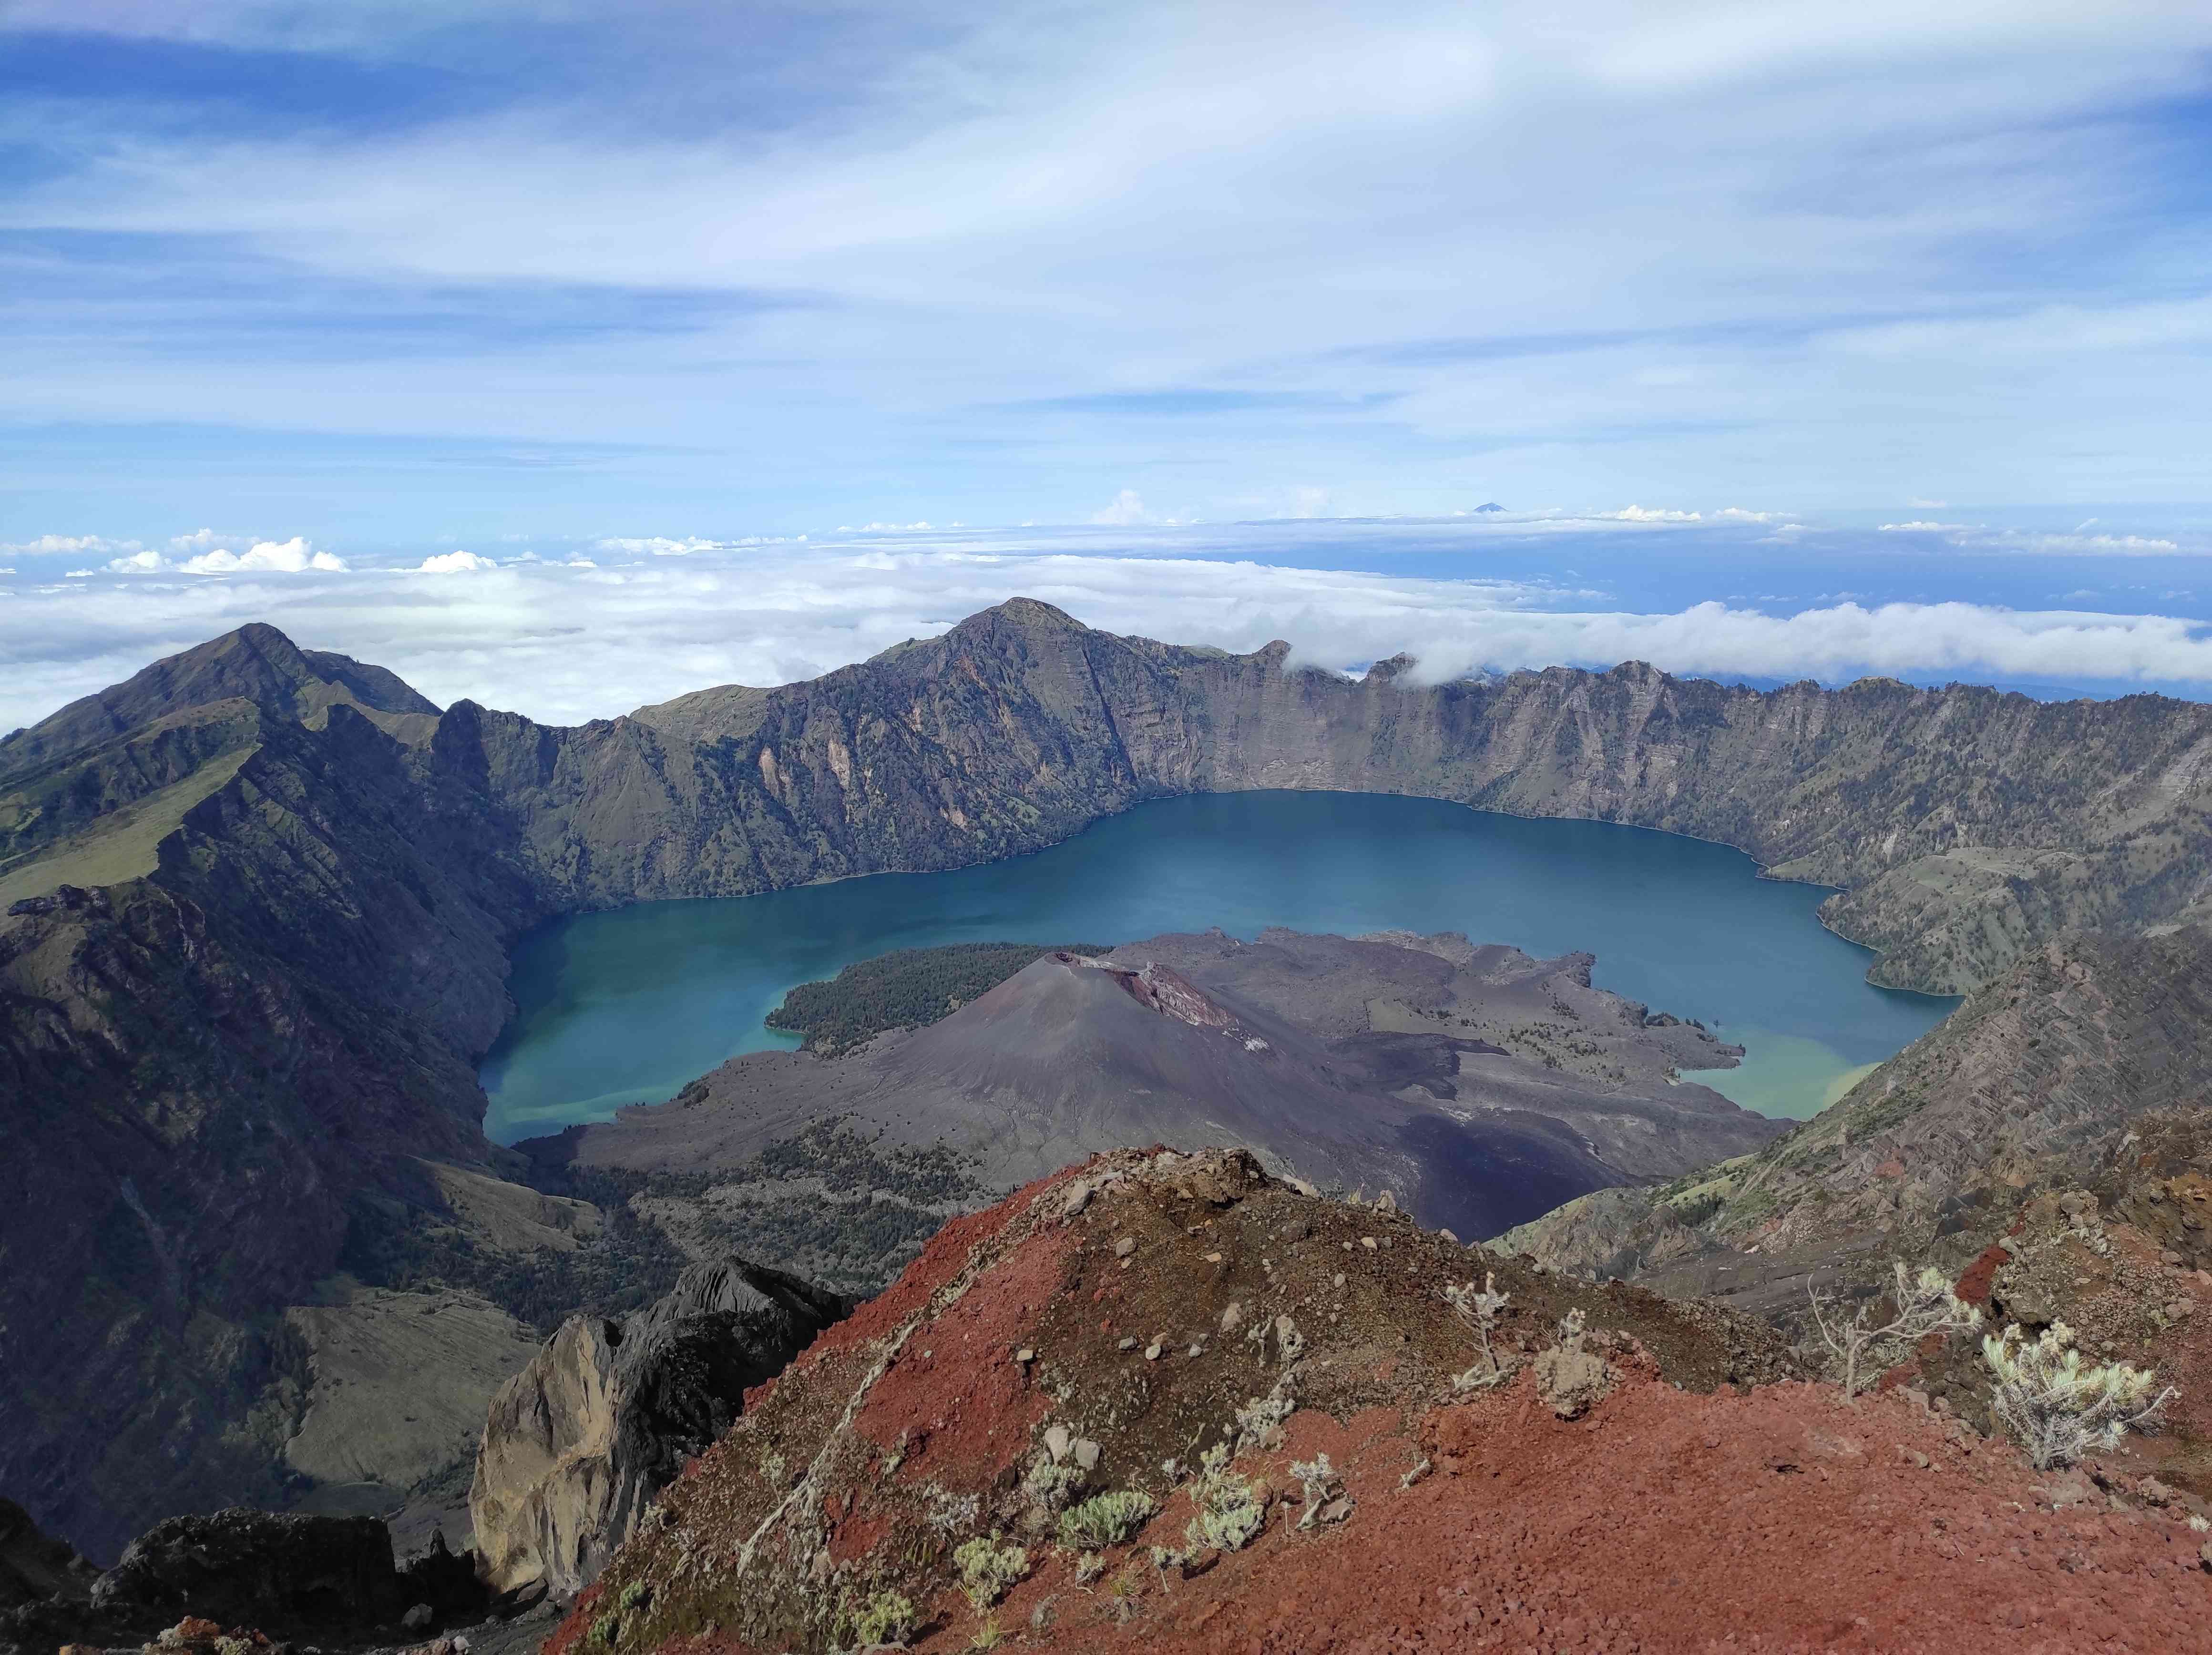 Beatiful View Of Mout Tambora Crater From An Altitude Of 2851